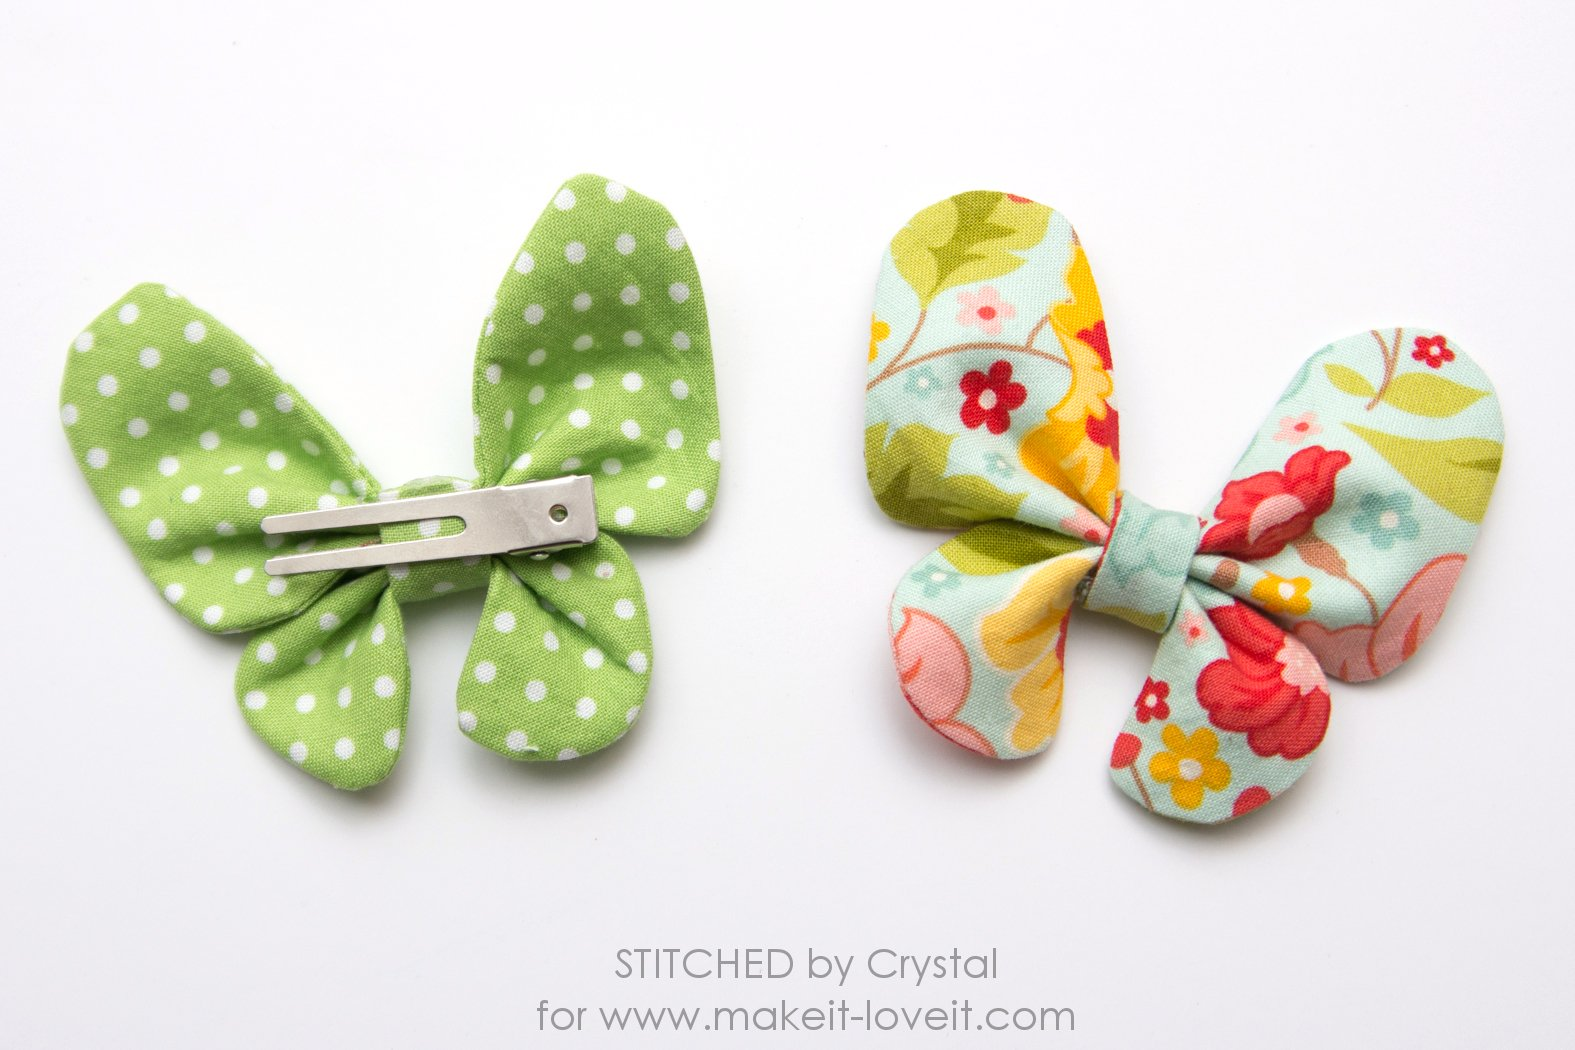 Hair bow button accessories -  Slide Your Clip In The Back Under The Fabric Tube Or Hot Glue The Butterfly In Place On A Clip Or Headband And Your Butterfly Hair Bow Is Done